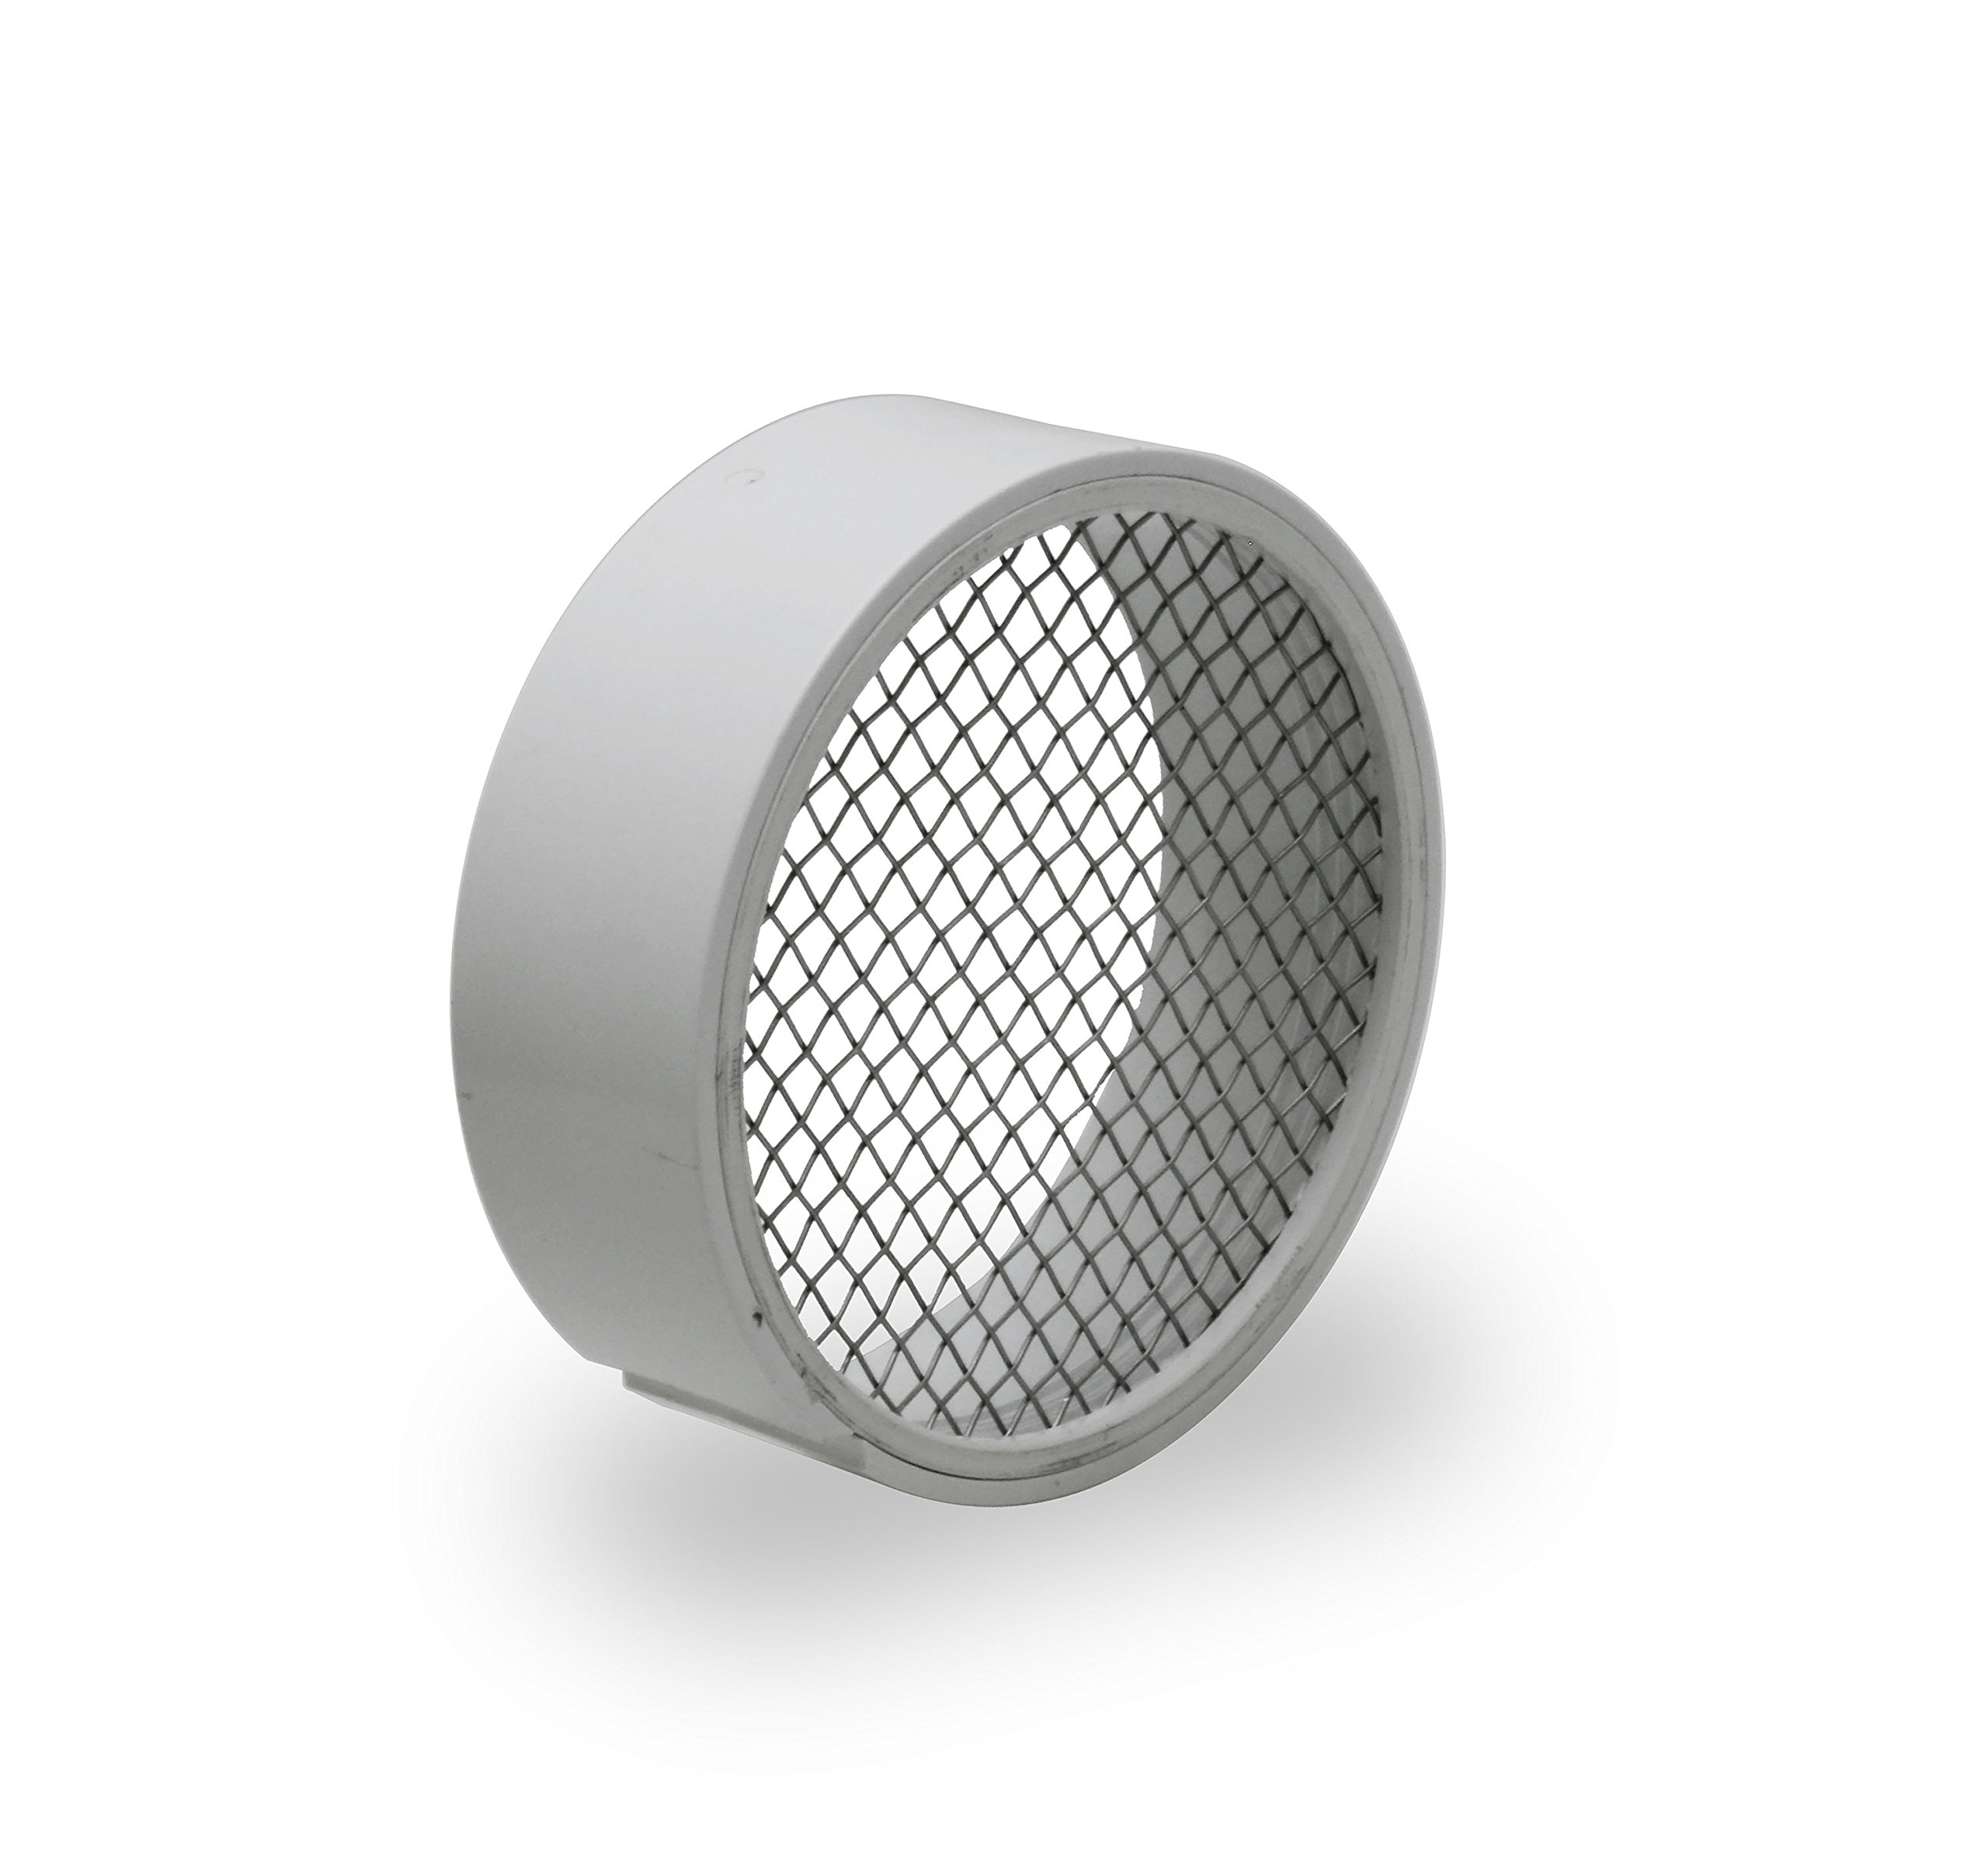 Raven R1510 PVC Termination Vent with 304 Stainless Steel Screen, 4 Inch, Slotted Side for Condensation to Drain, Durable, Easy to Install in Hub of PVC Fitting, Maximum Airflow